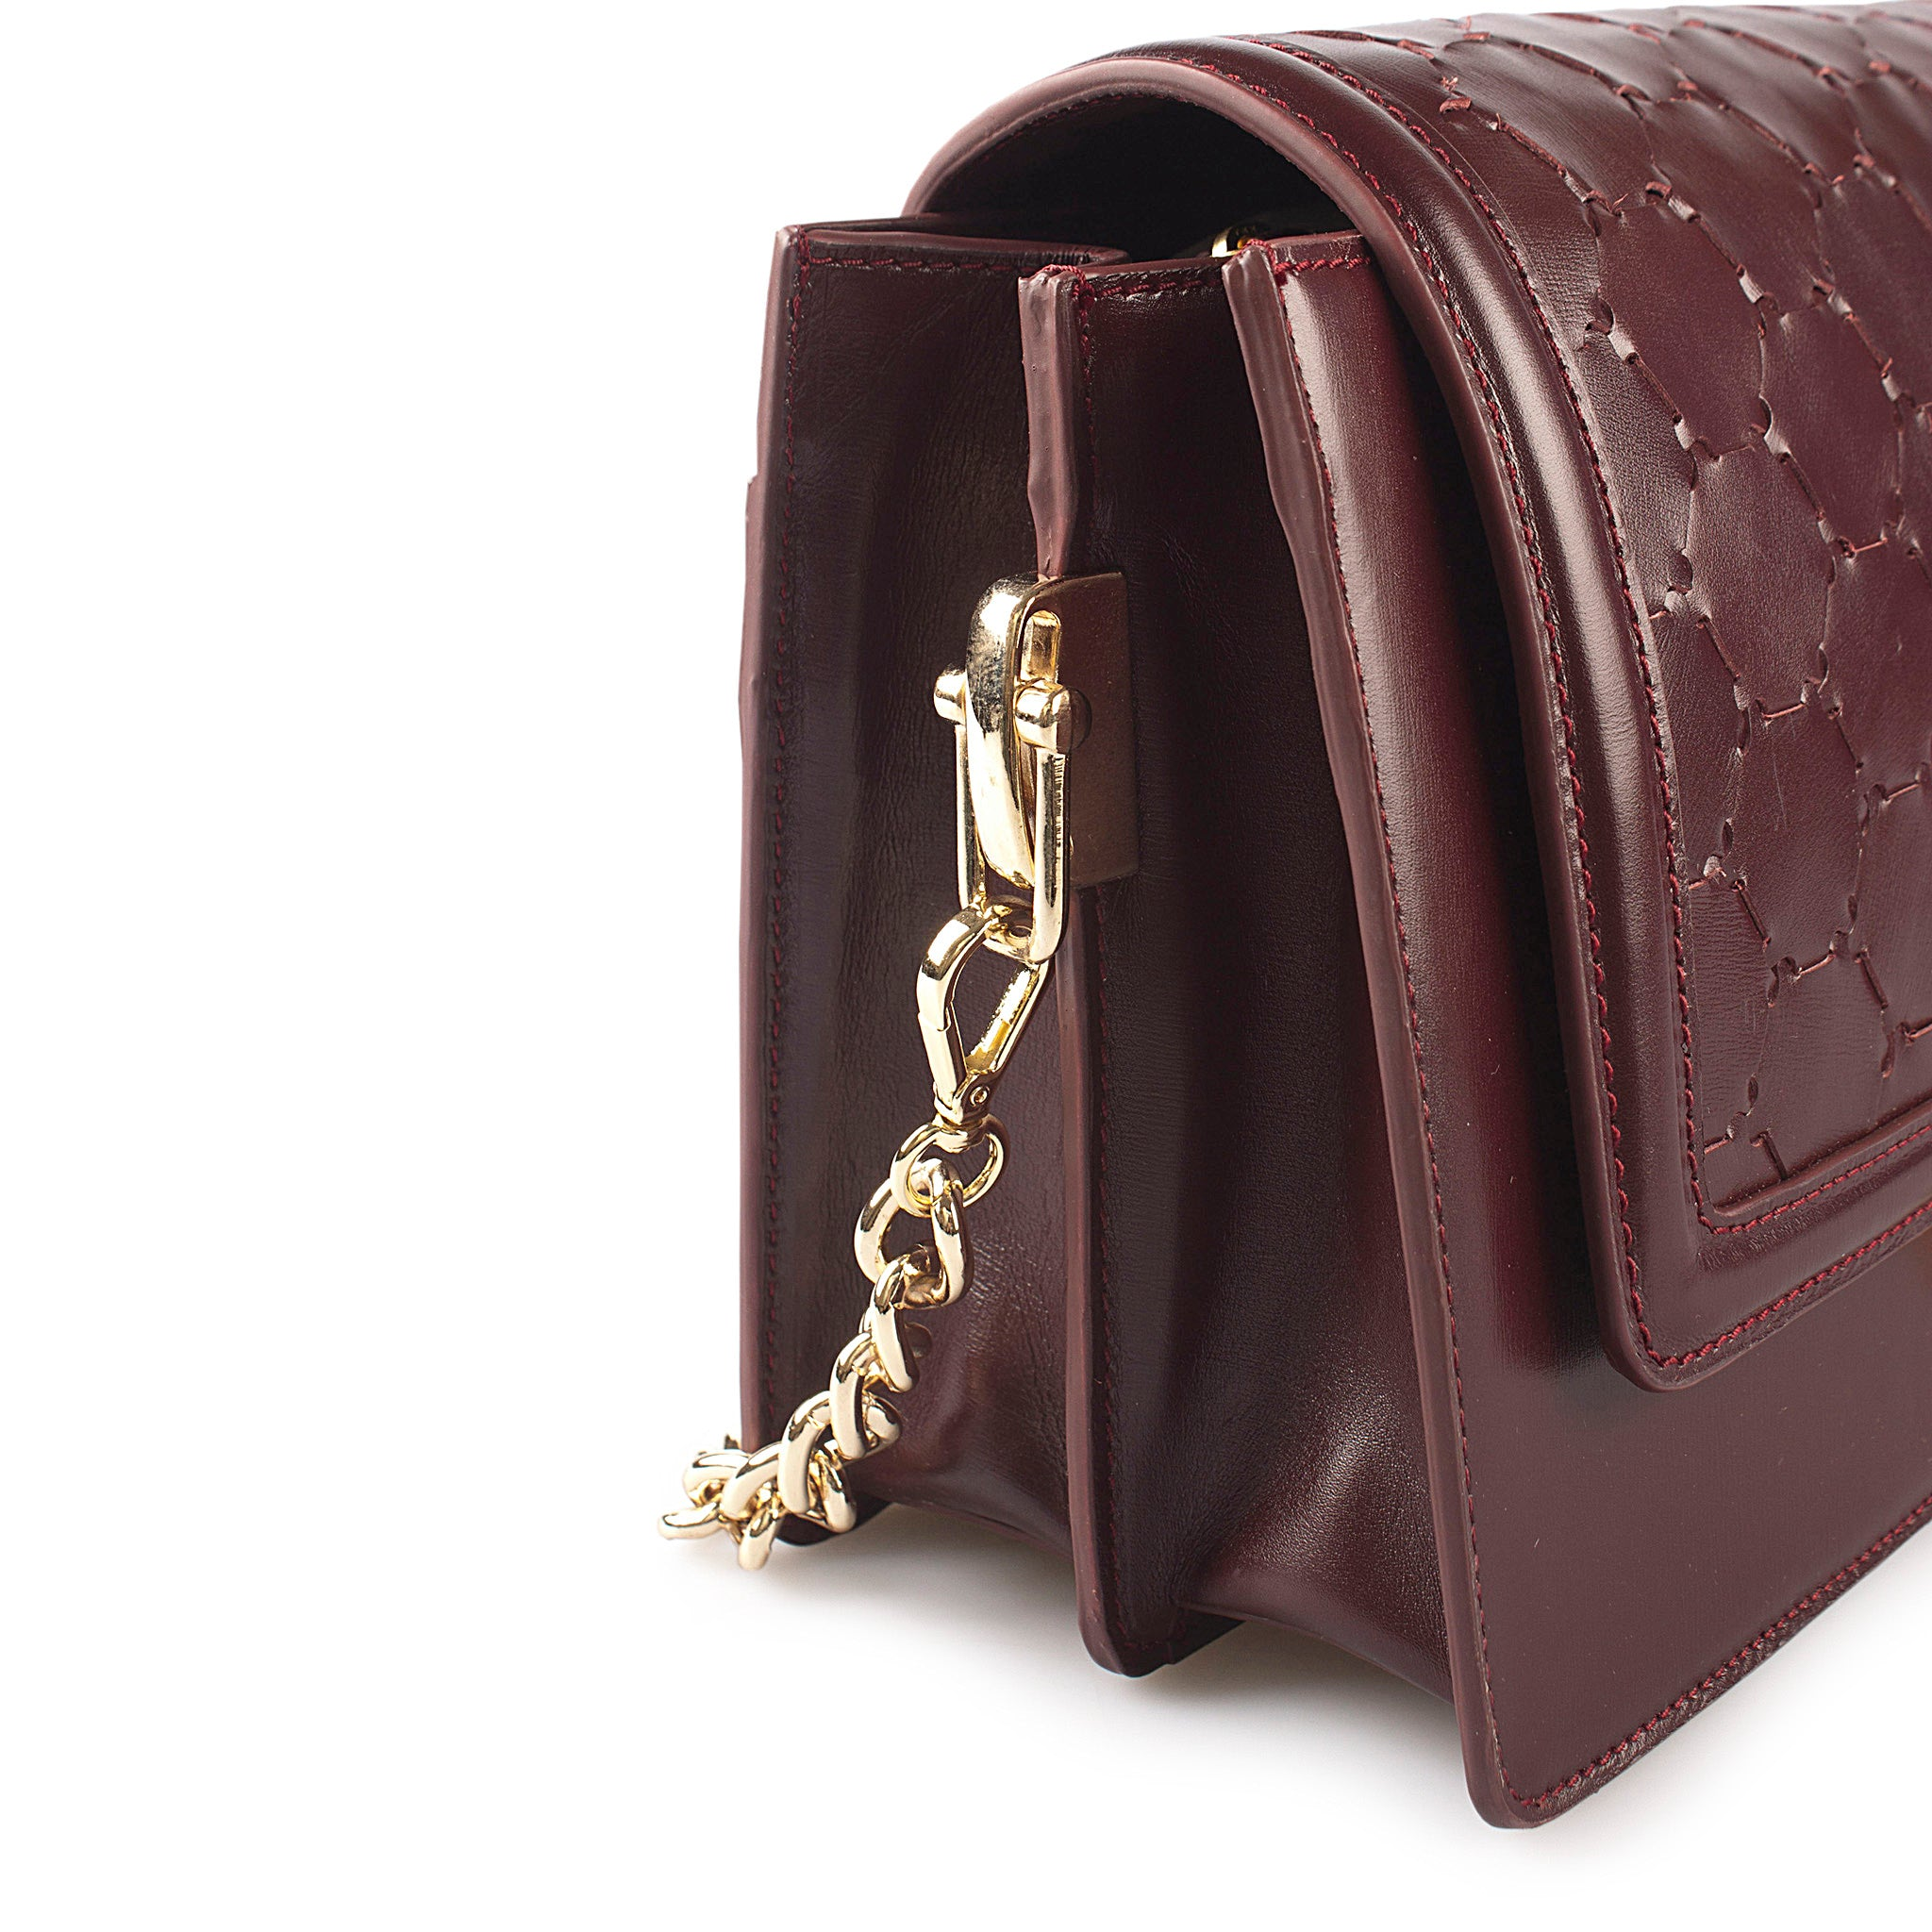 bordeaux luxury leather crossbody bag with handwoven flap and chain handle side detail